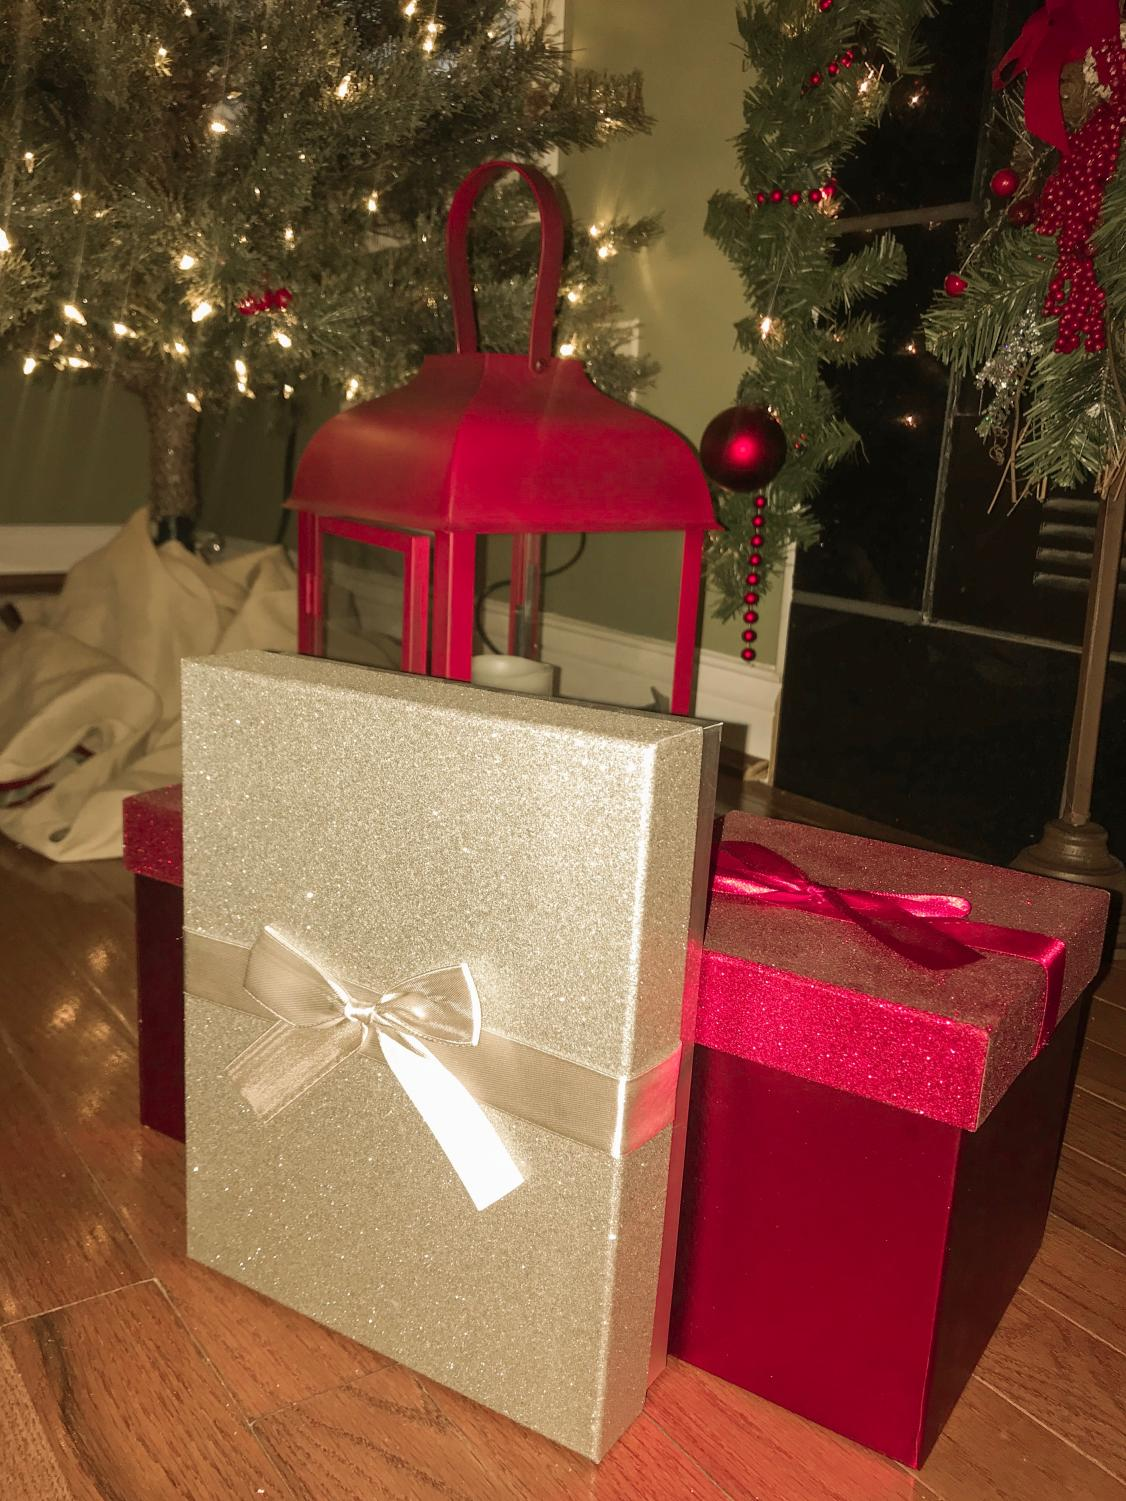 Gifts are placed under the tree in preparation for gift exchanges.